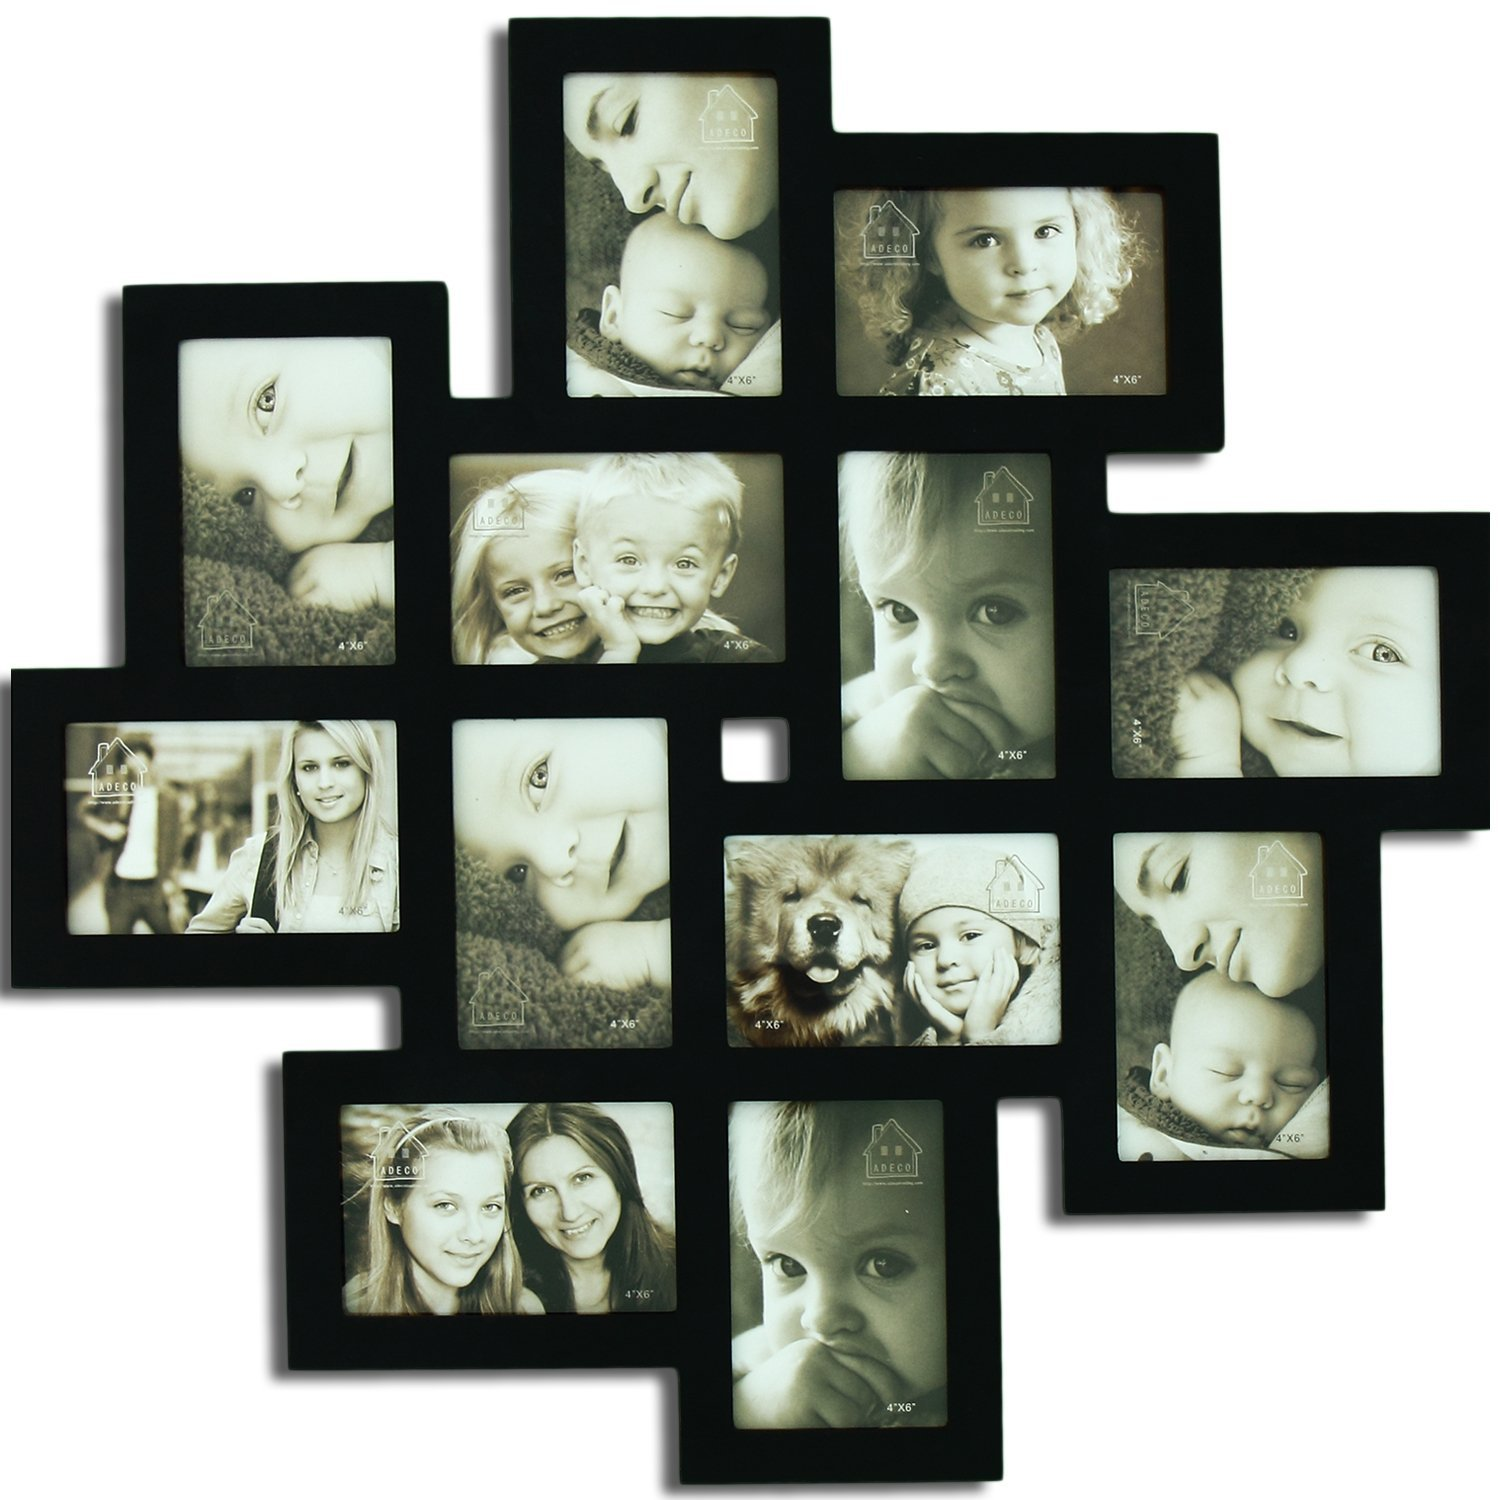 Amazon adeco pf0206 decorative black wood wall hanging amazon adeco pf0206 decorative black wood wall hanging collage picture photo frame 12 openings 4x6 jeuxipadfo Choice Image